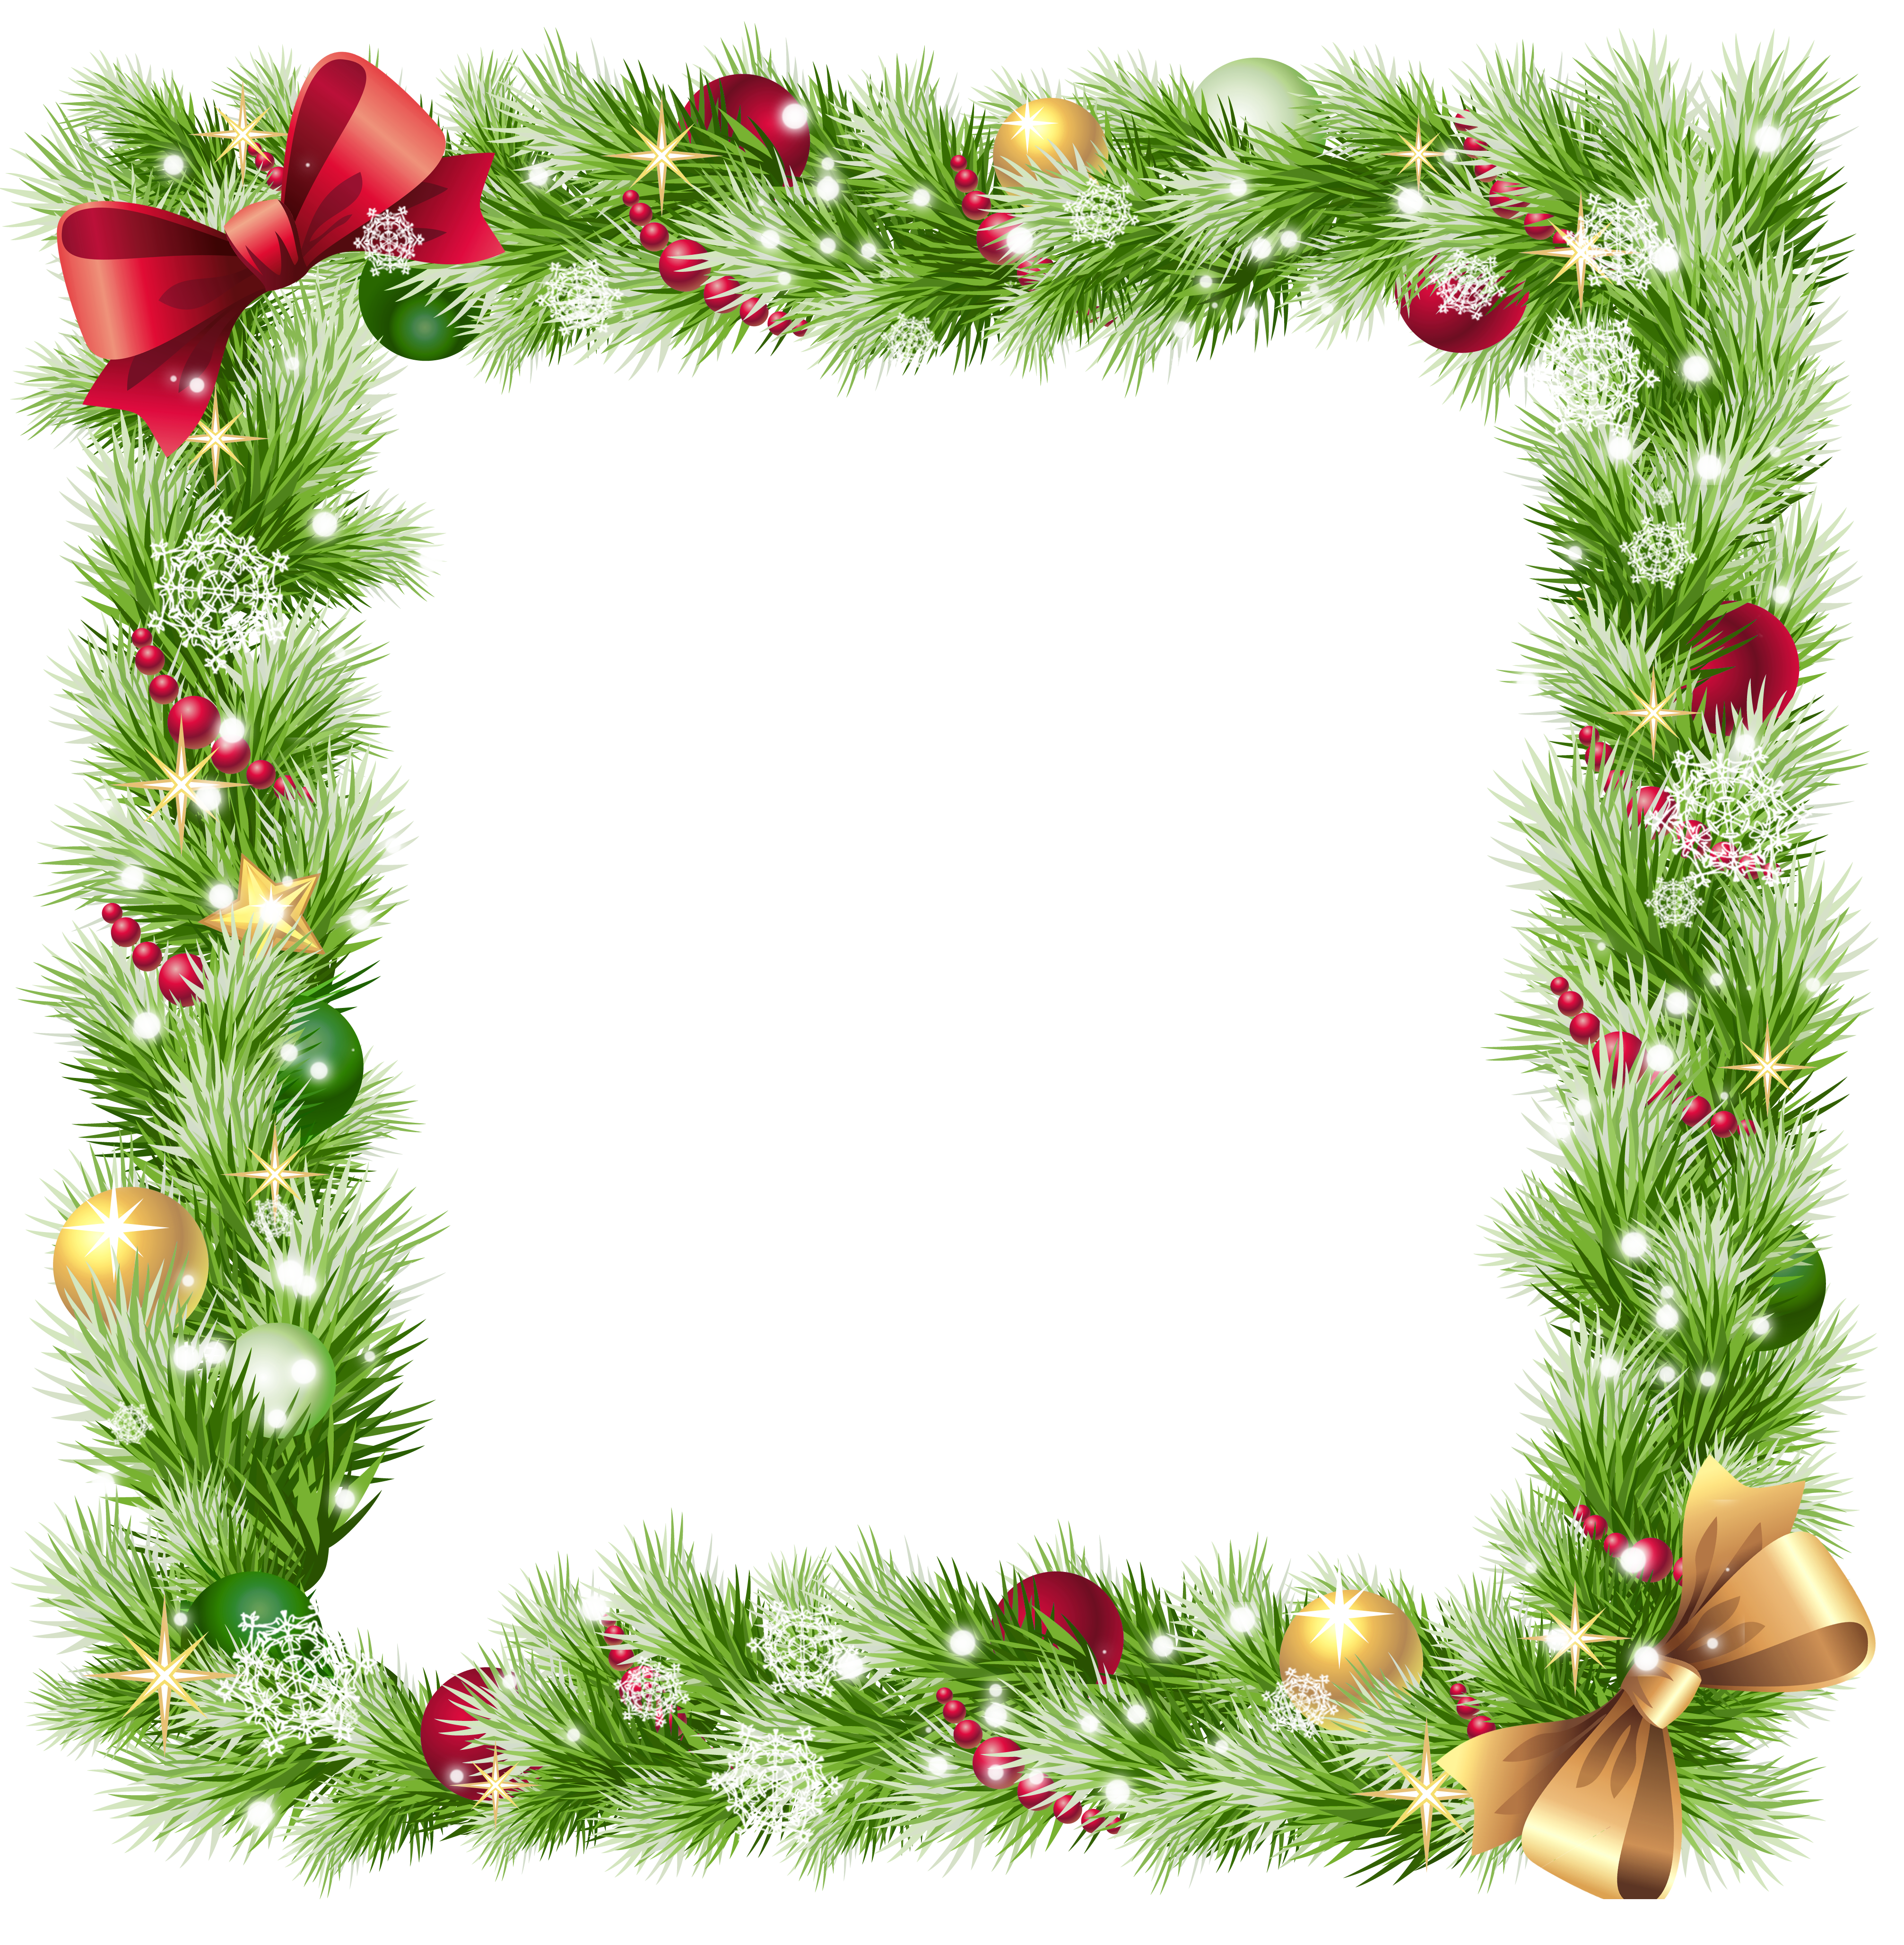 download Christmas PNG Frame with Ornaments and Snowflakes